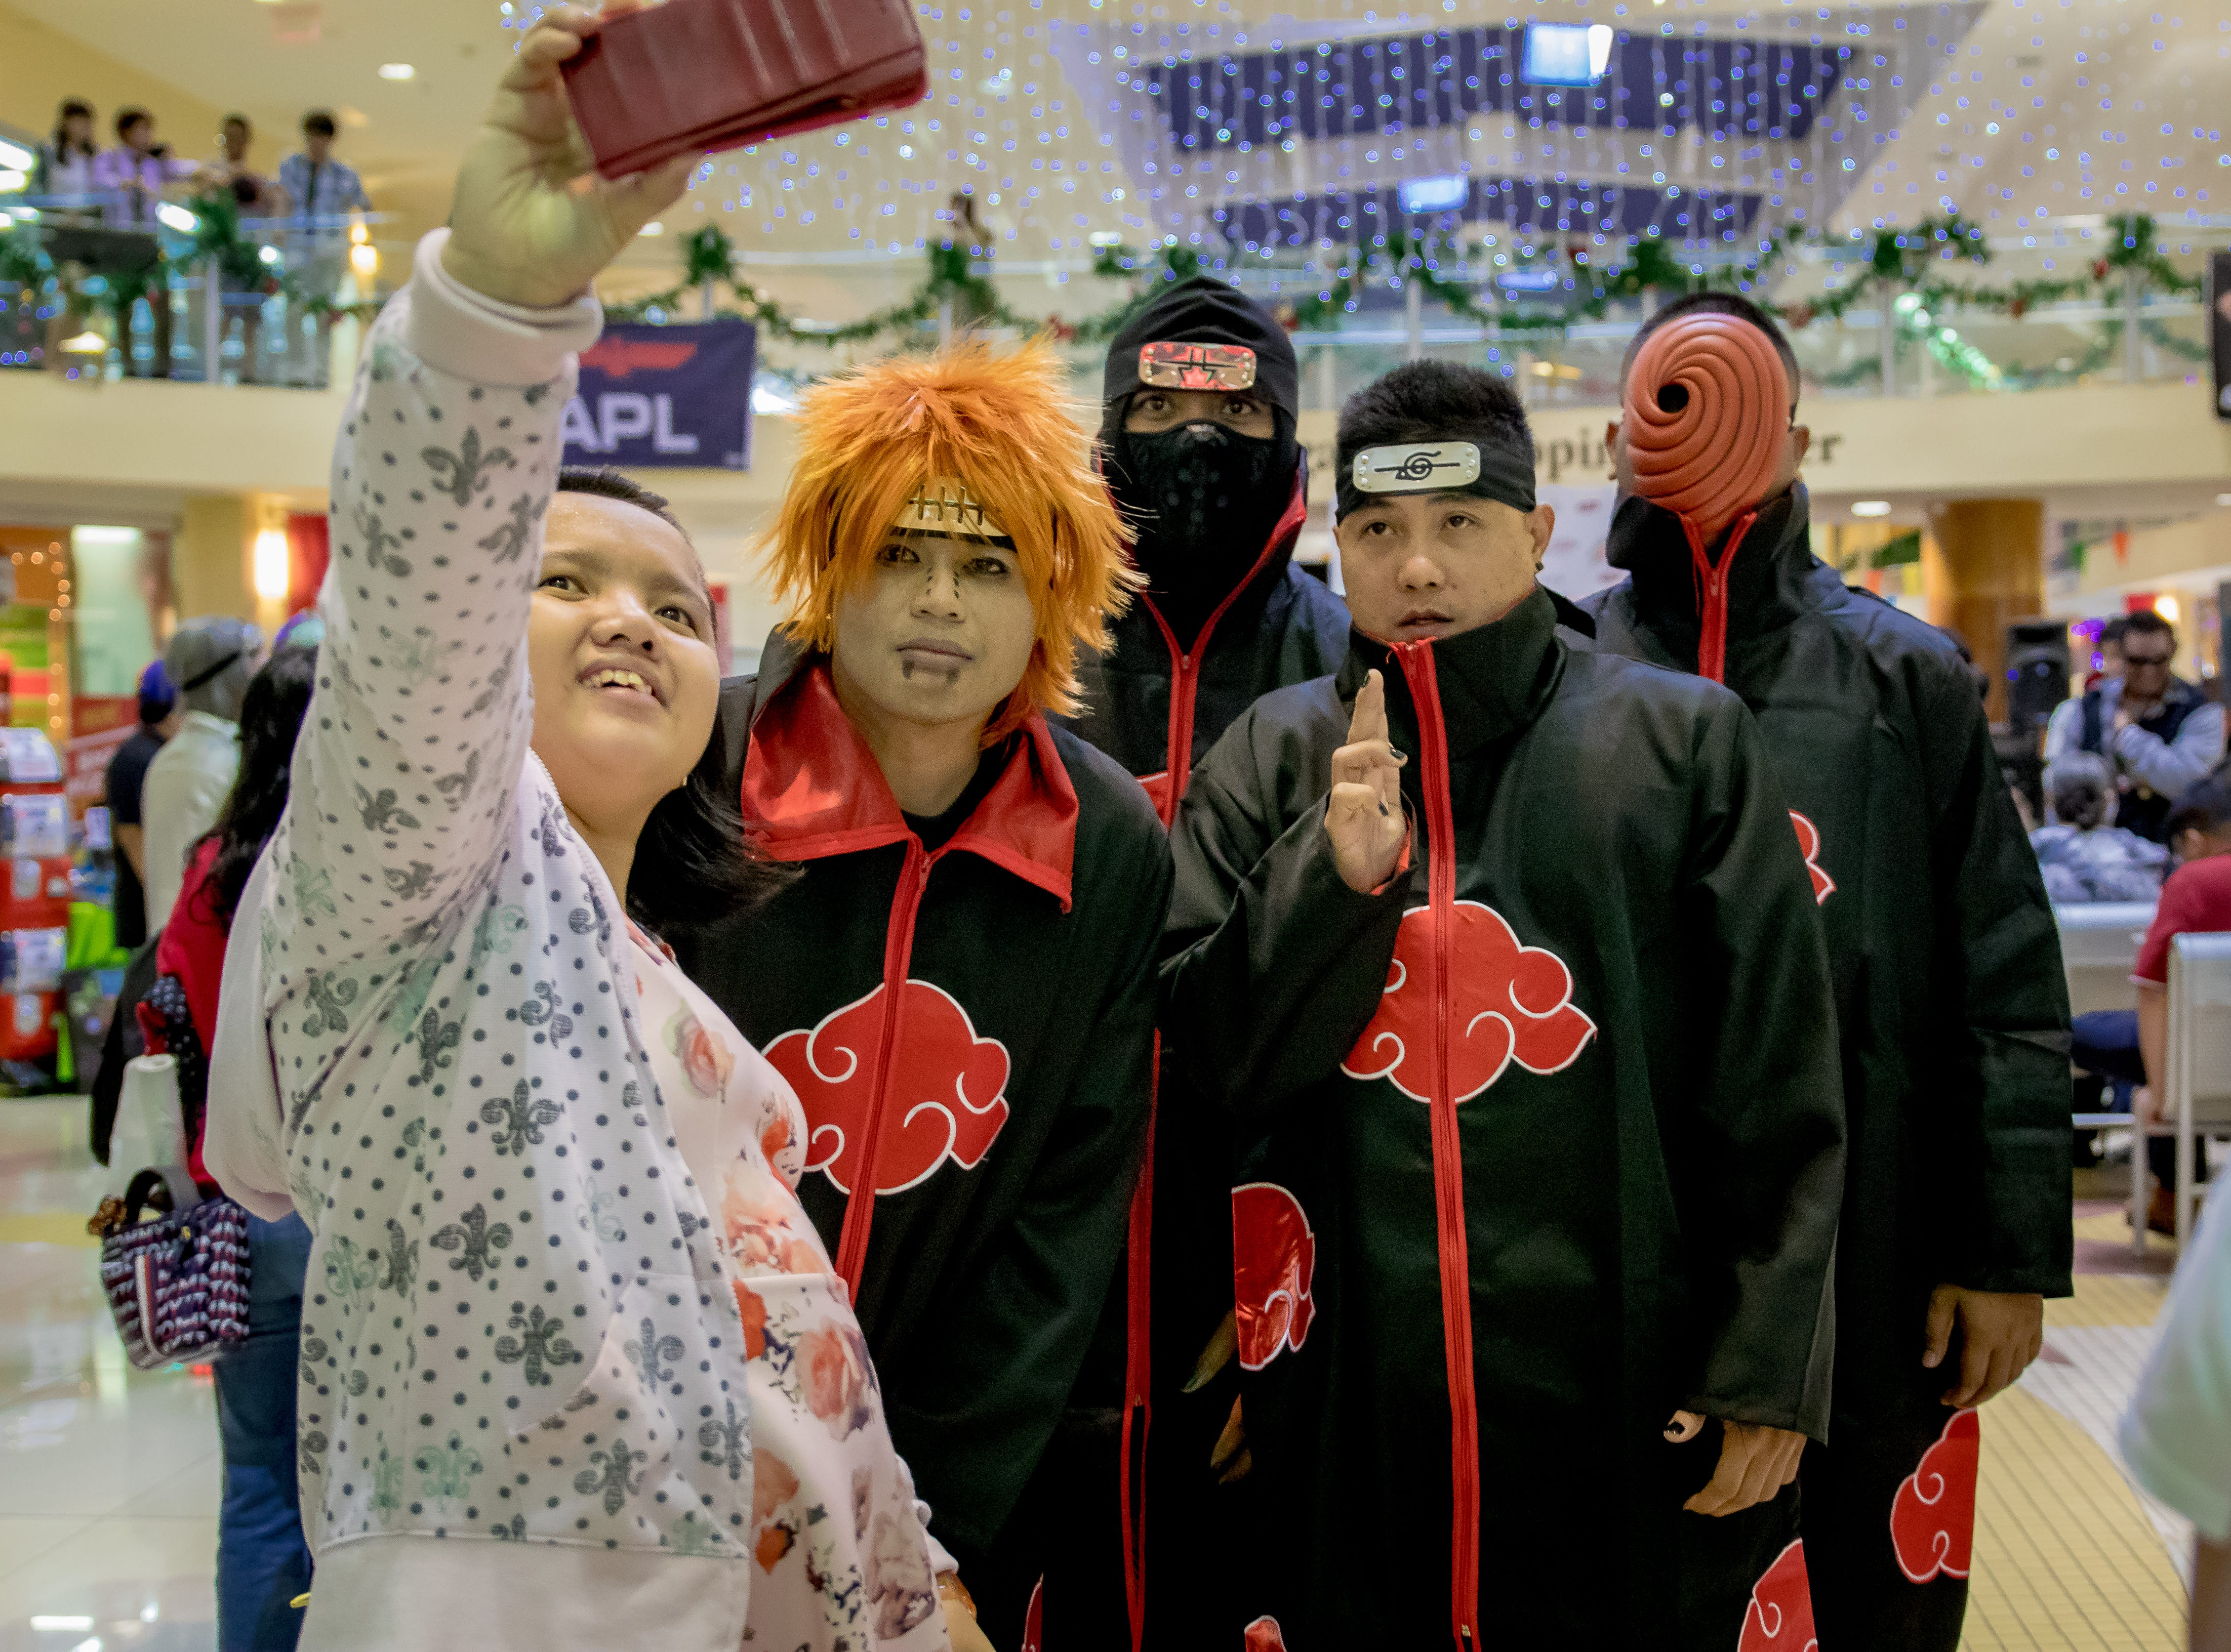 Aiko Sotomayor takes a self portrait with cosplayers during the Herocon event held at Agana Shopping Center on Dec. 9.